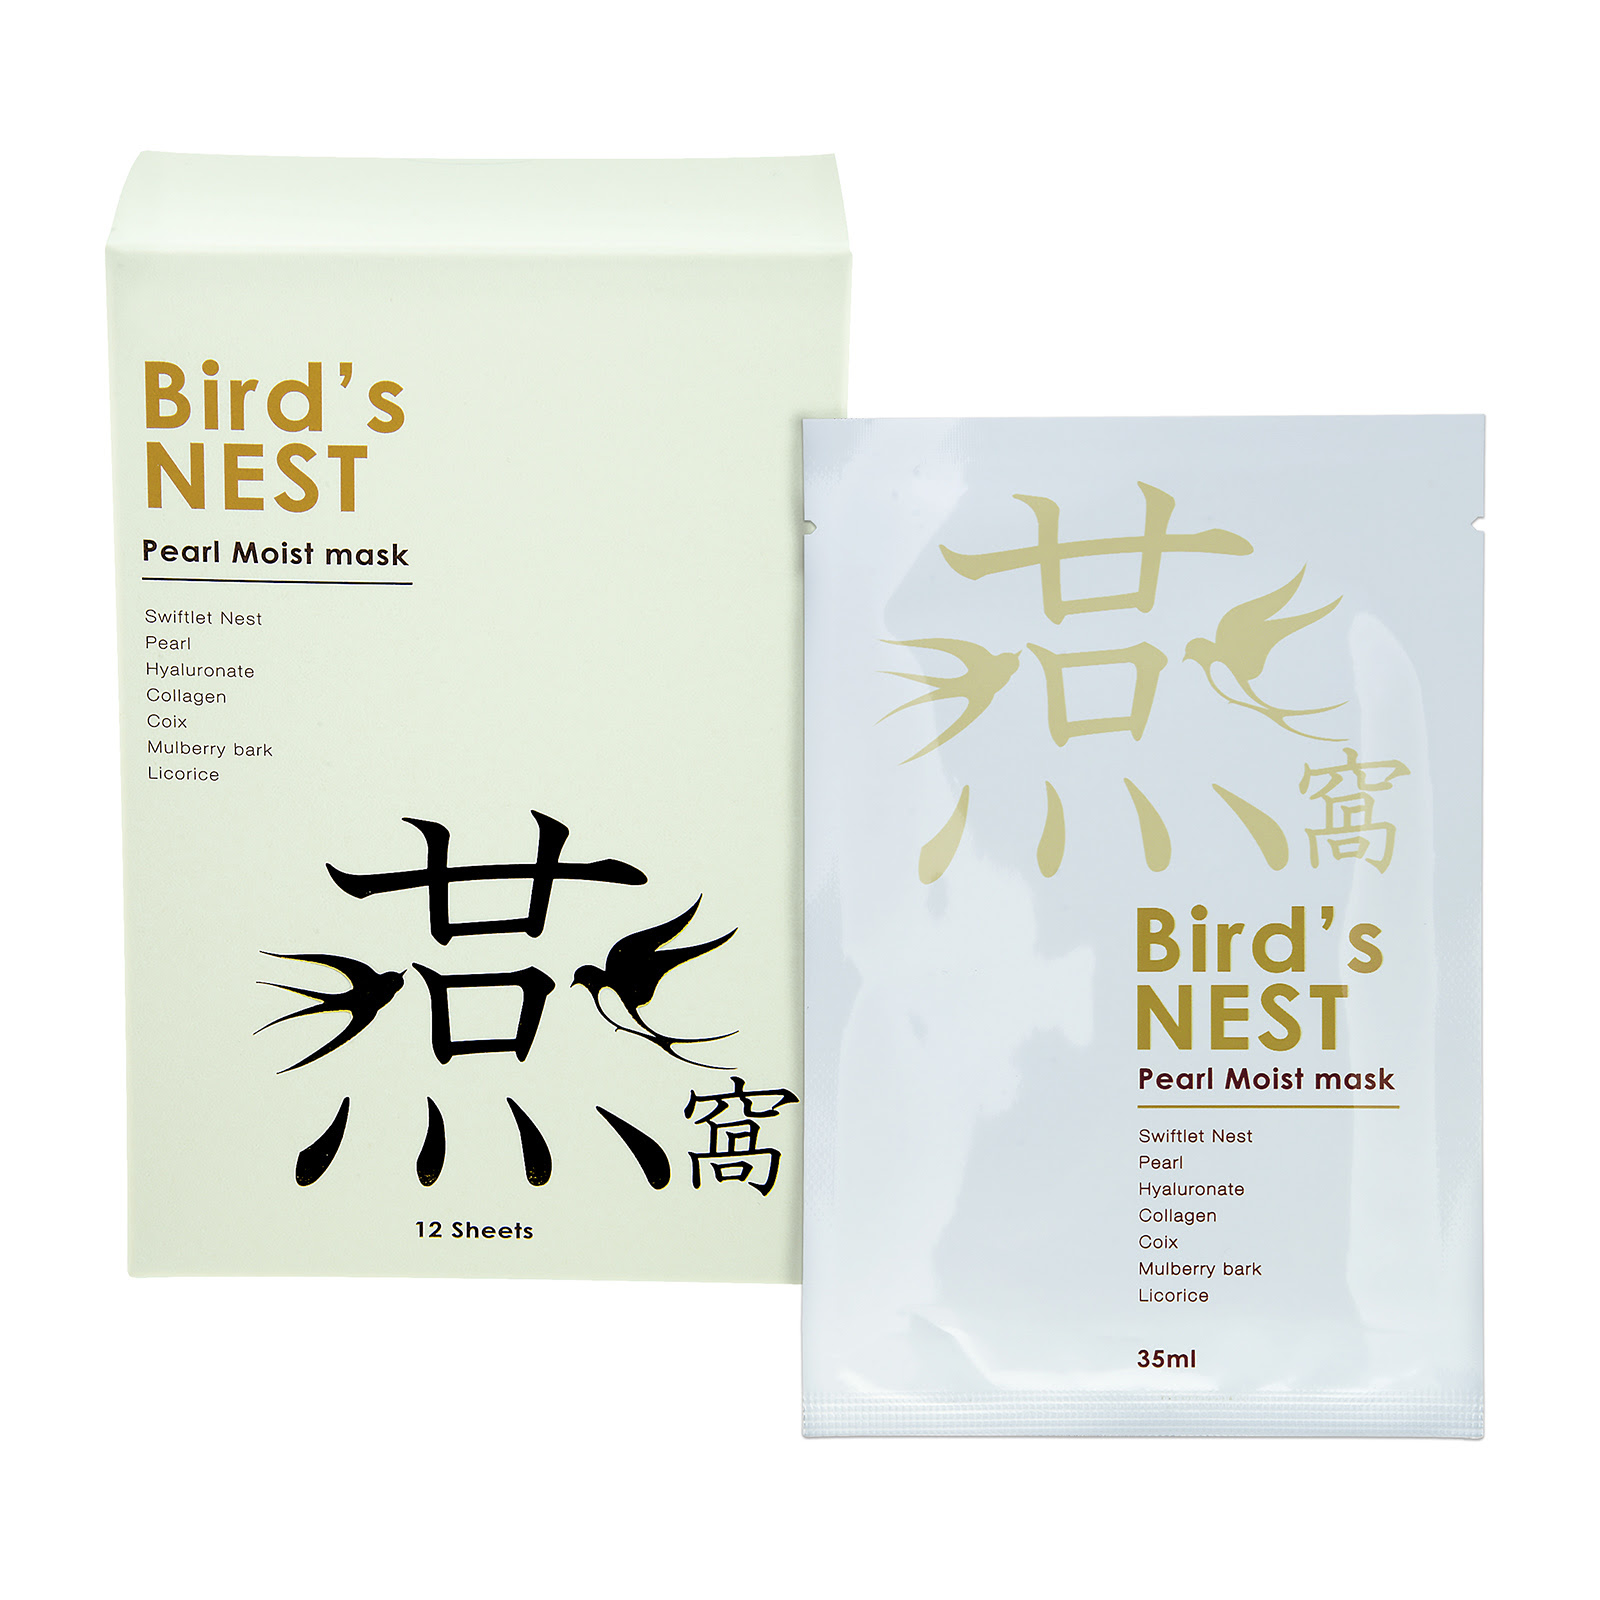 Bird's Nest Bird's Nest Pearl Moist Mask